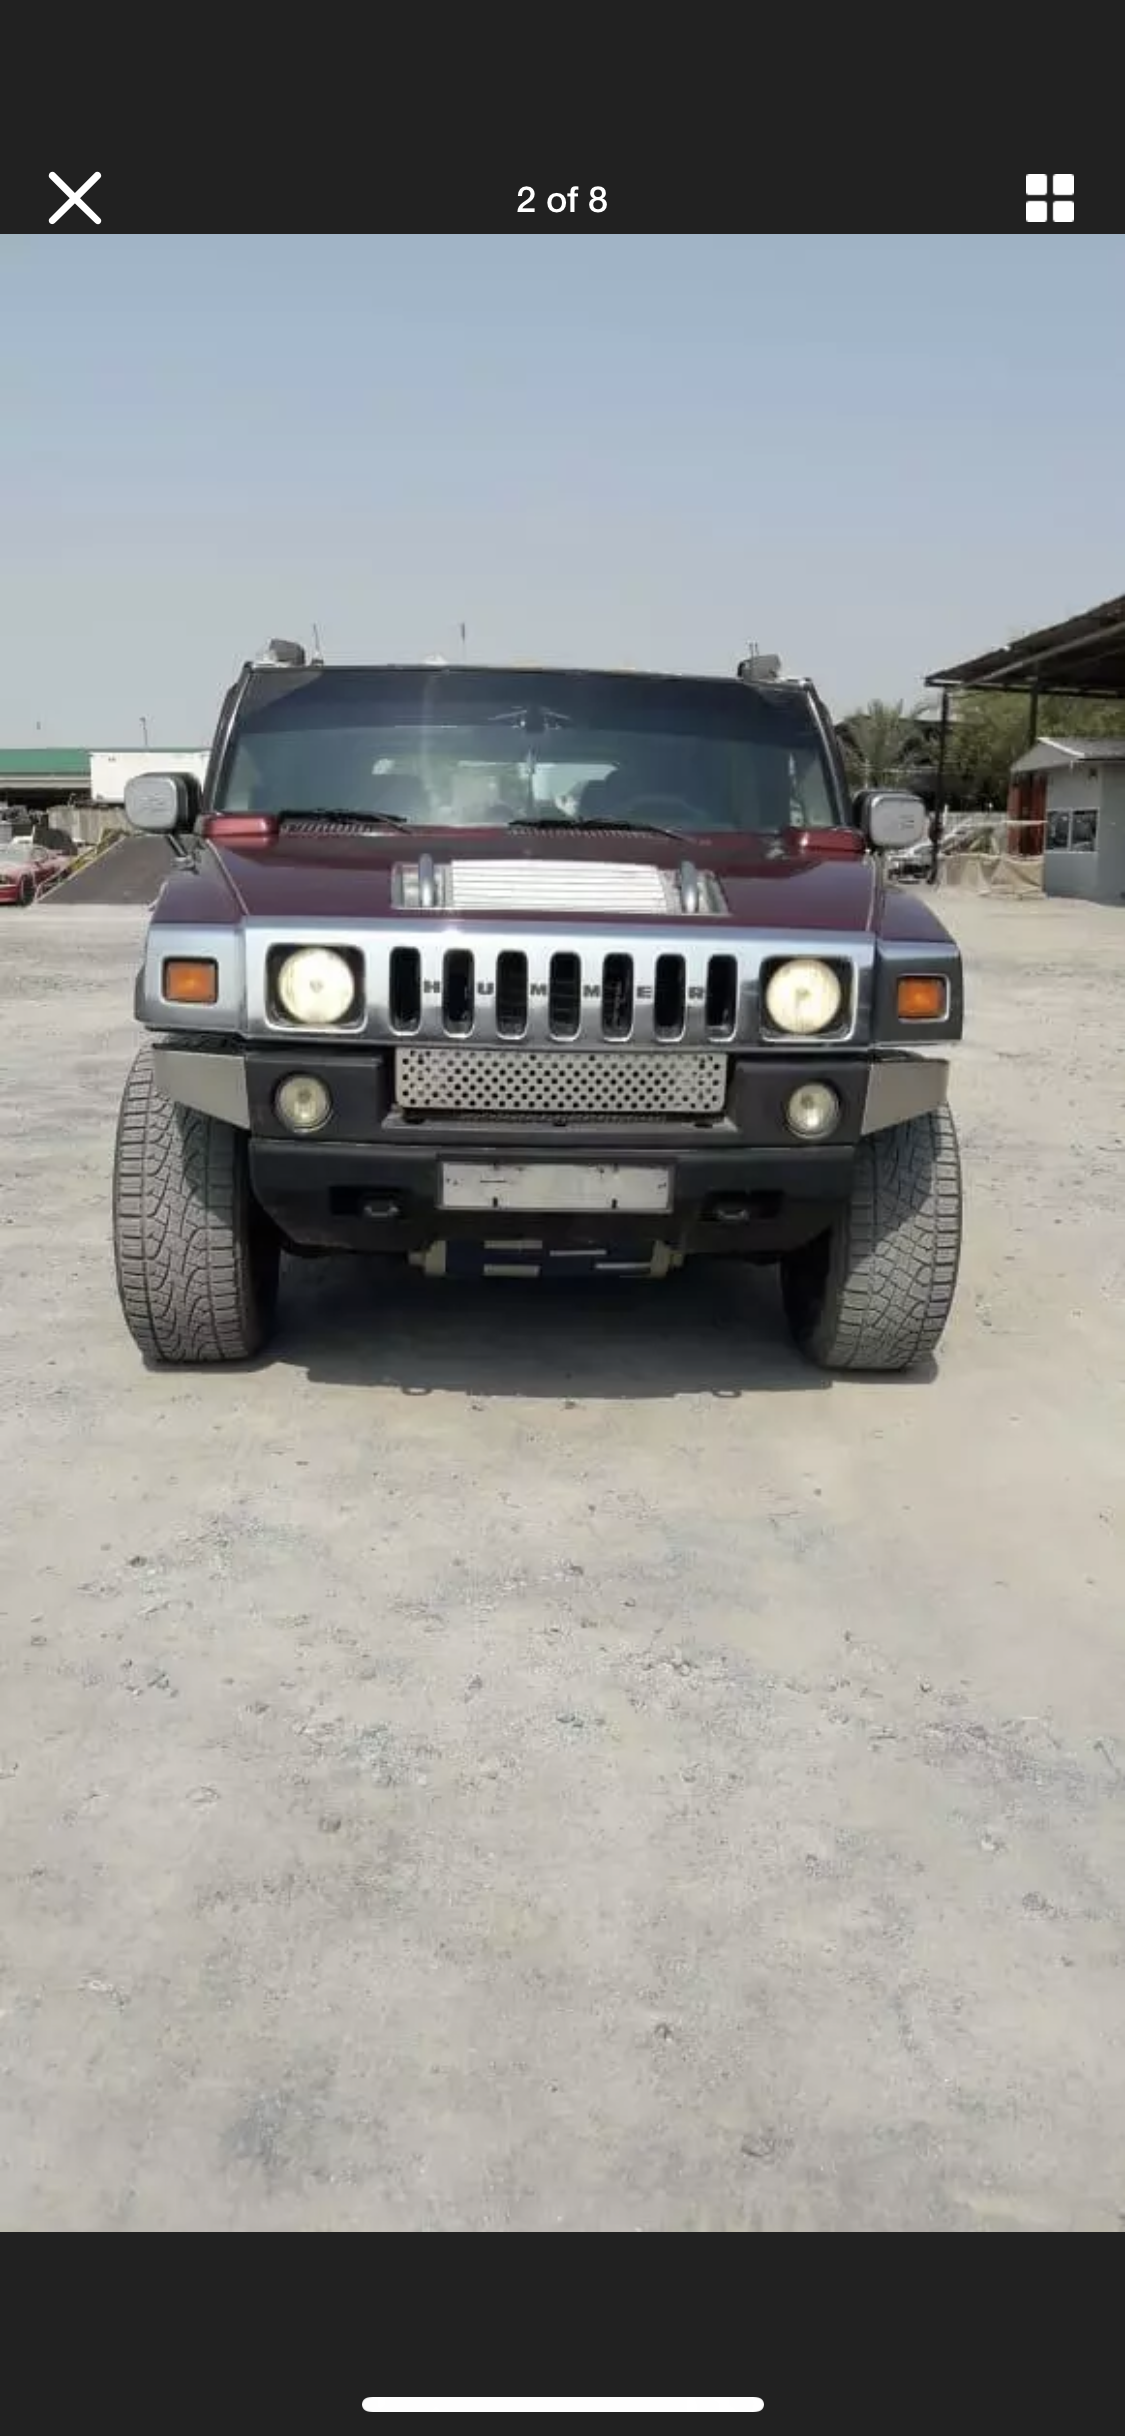 2003 HUMMER H2 6.0 LEFT HAND DRIVE LHD FRESH IMPORT AMERICAN For Sale (picture 5 of 6)